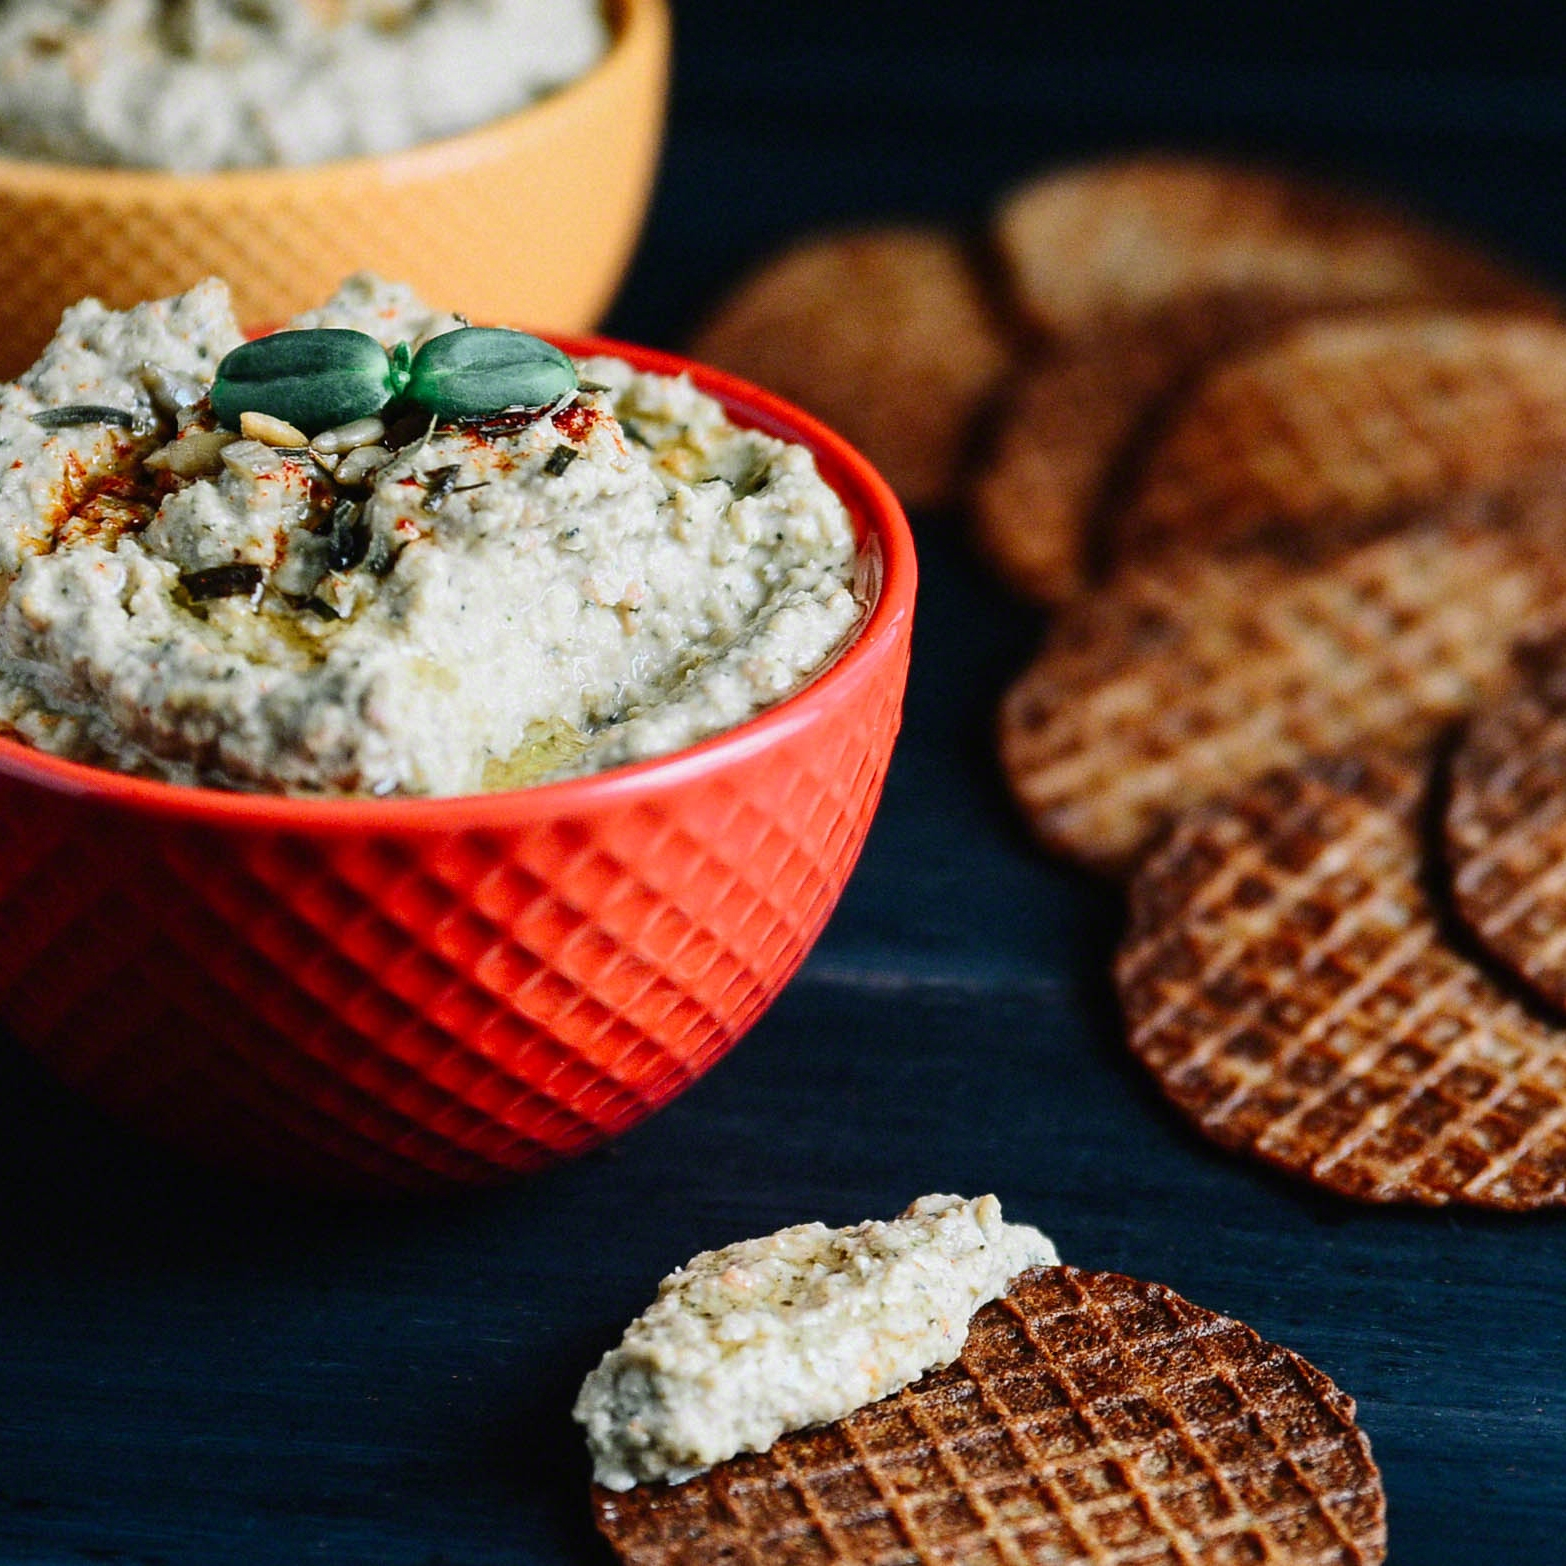 MINI WAFFLE WAFERS WITH SUNFLOWER VEGGIE DIP | SEED PLANT WATER GROW